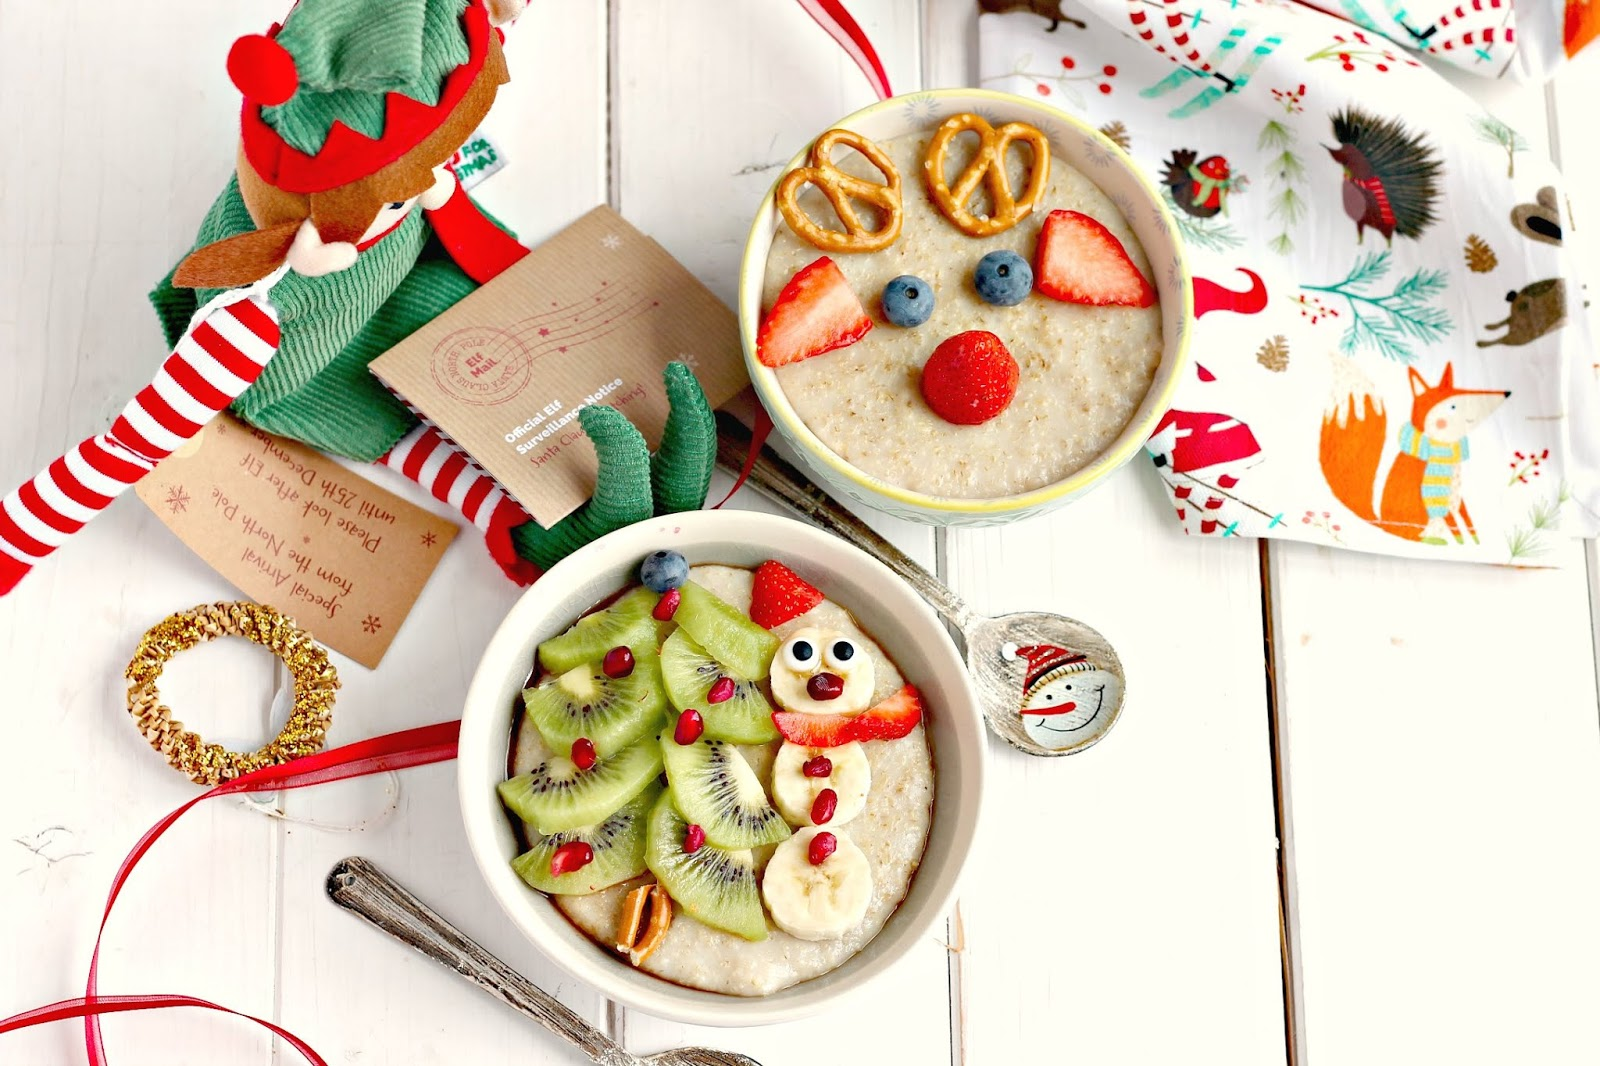 Slow Cooker Snowman and Reindeer Christmas Porridge